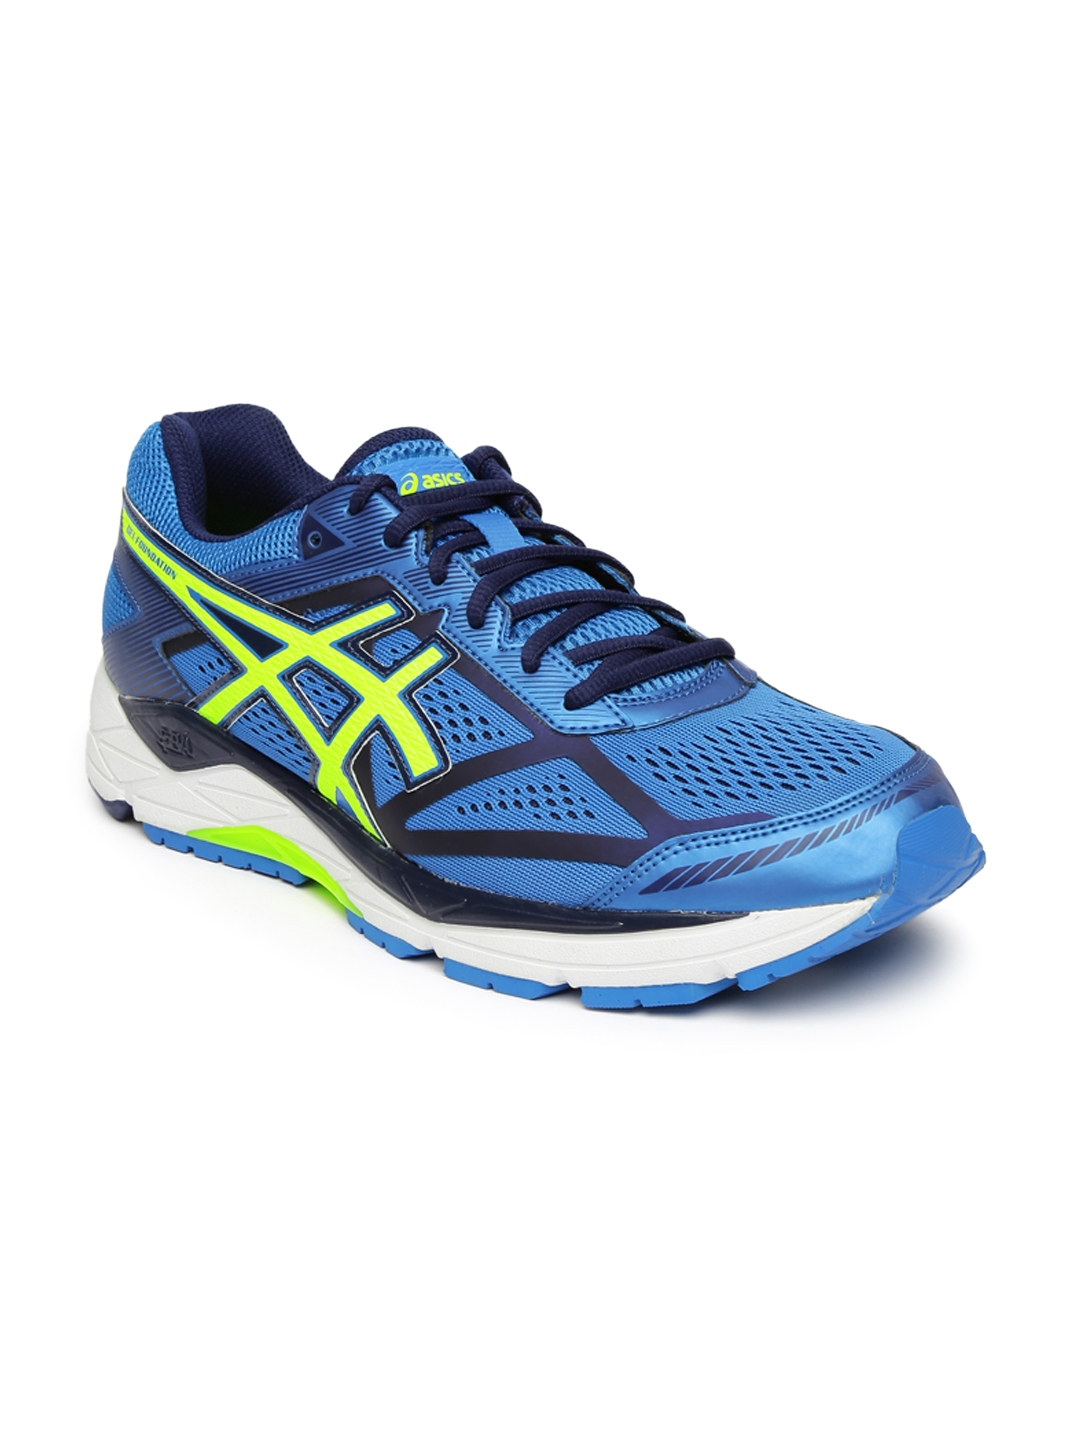 asics gel foundation 7